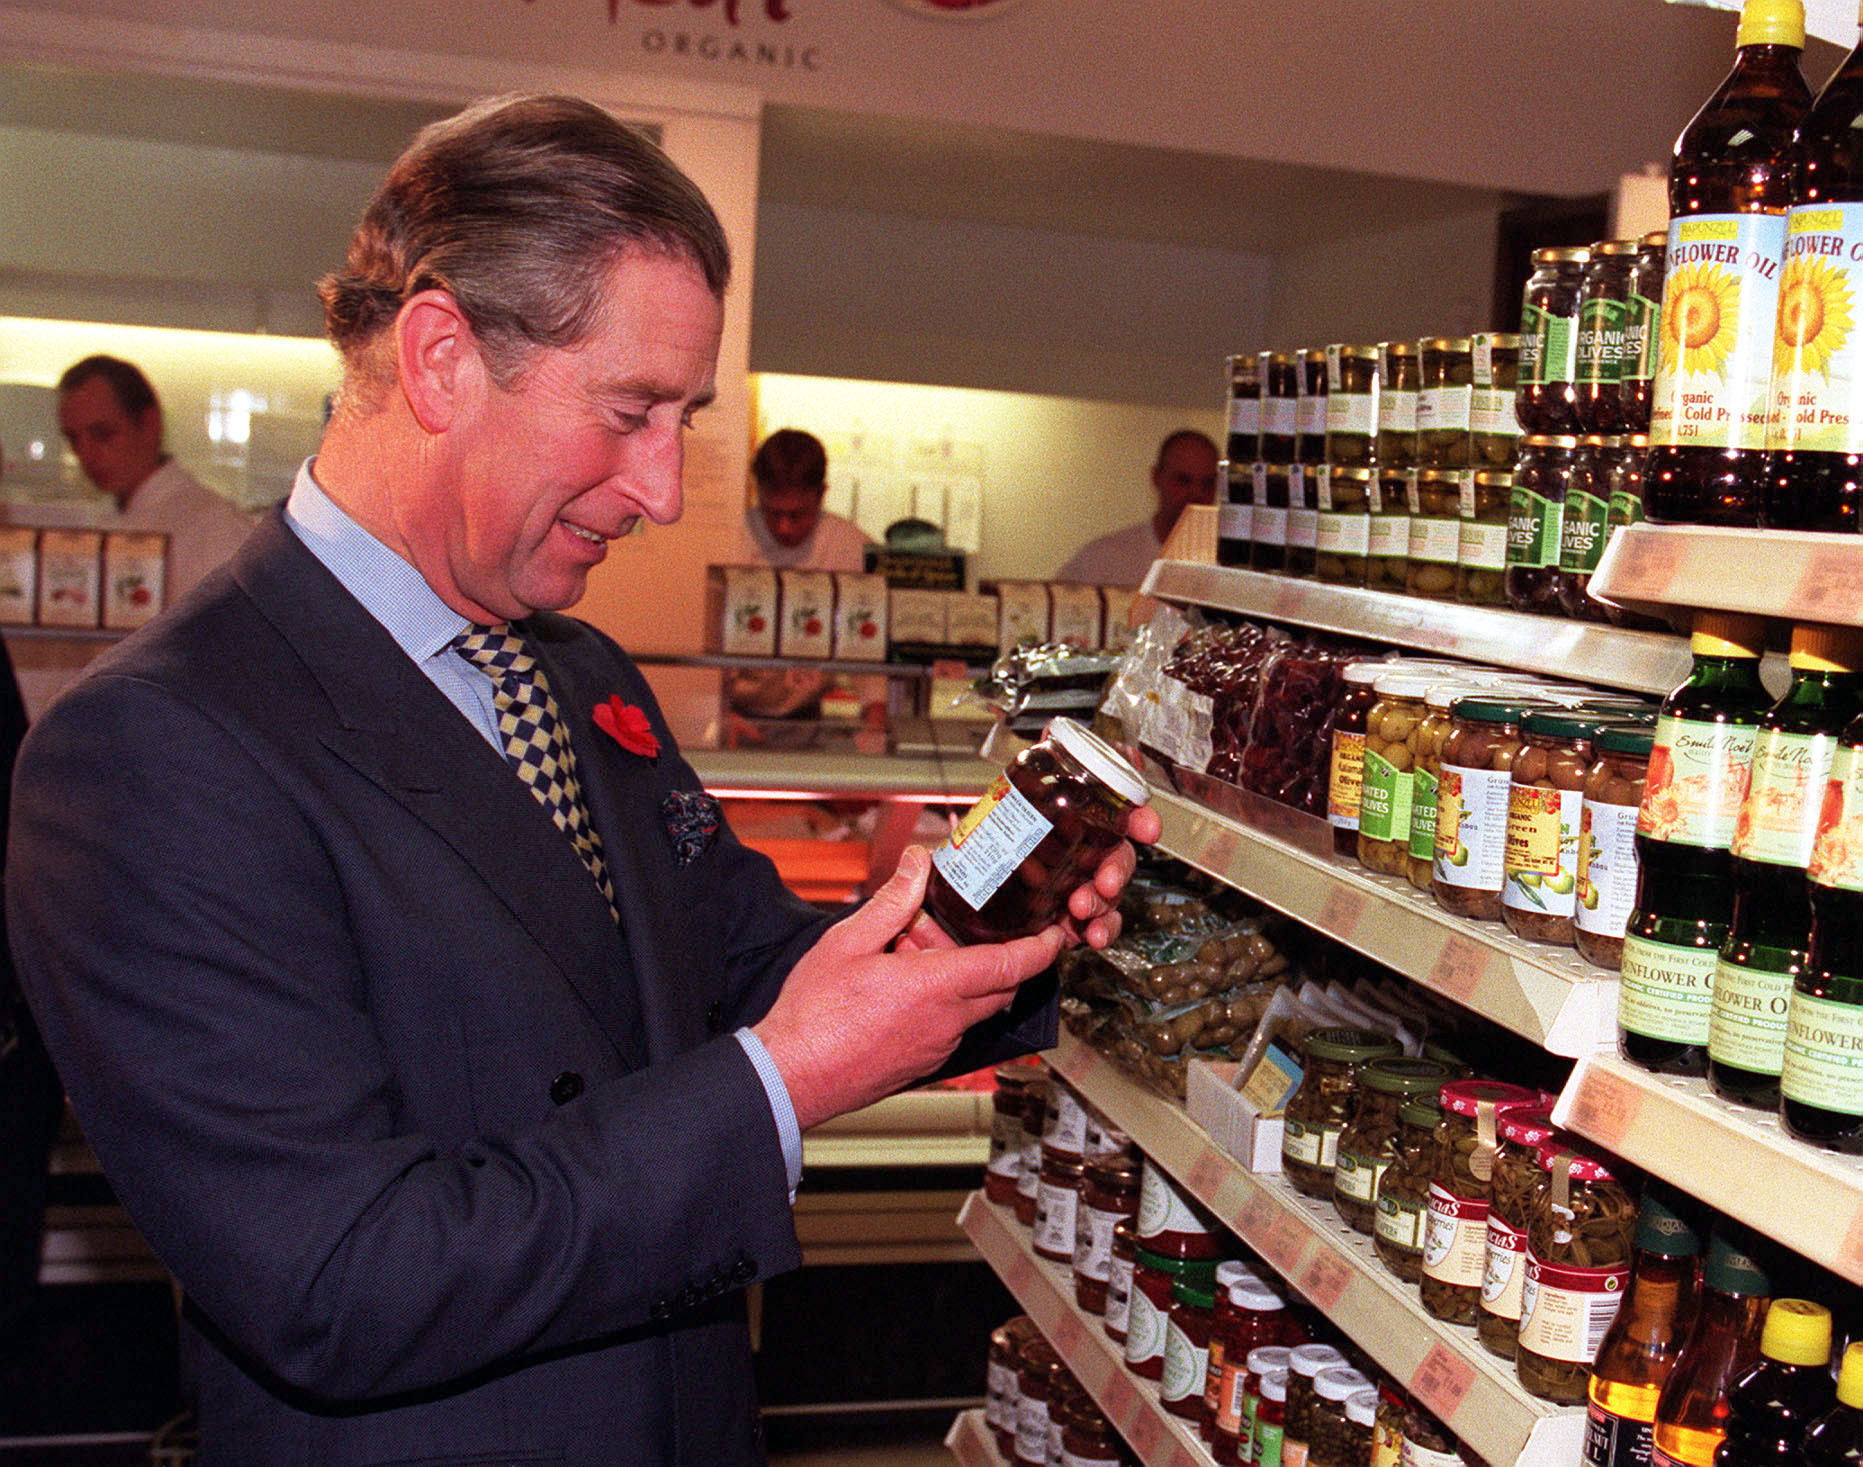 he Prince of Wales, went on a shopping expedition to an organic supermarket, in central London, where he chose a brand of organic olives, surprising staff and customers with an unannounced visit. * Prince Charles, a longtime proponent of natural foods, spent almost an hour walking around Britain's biggest organic food shop, Planet Organic, in Notting Hill. PA